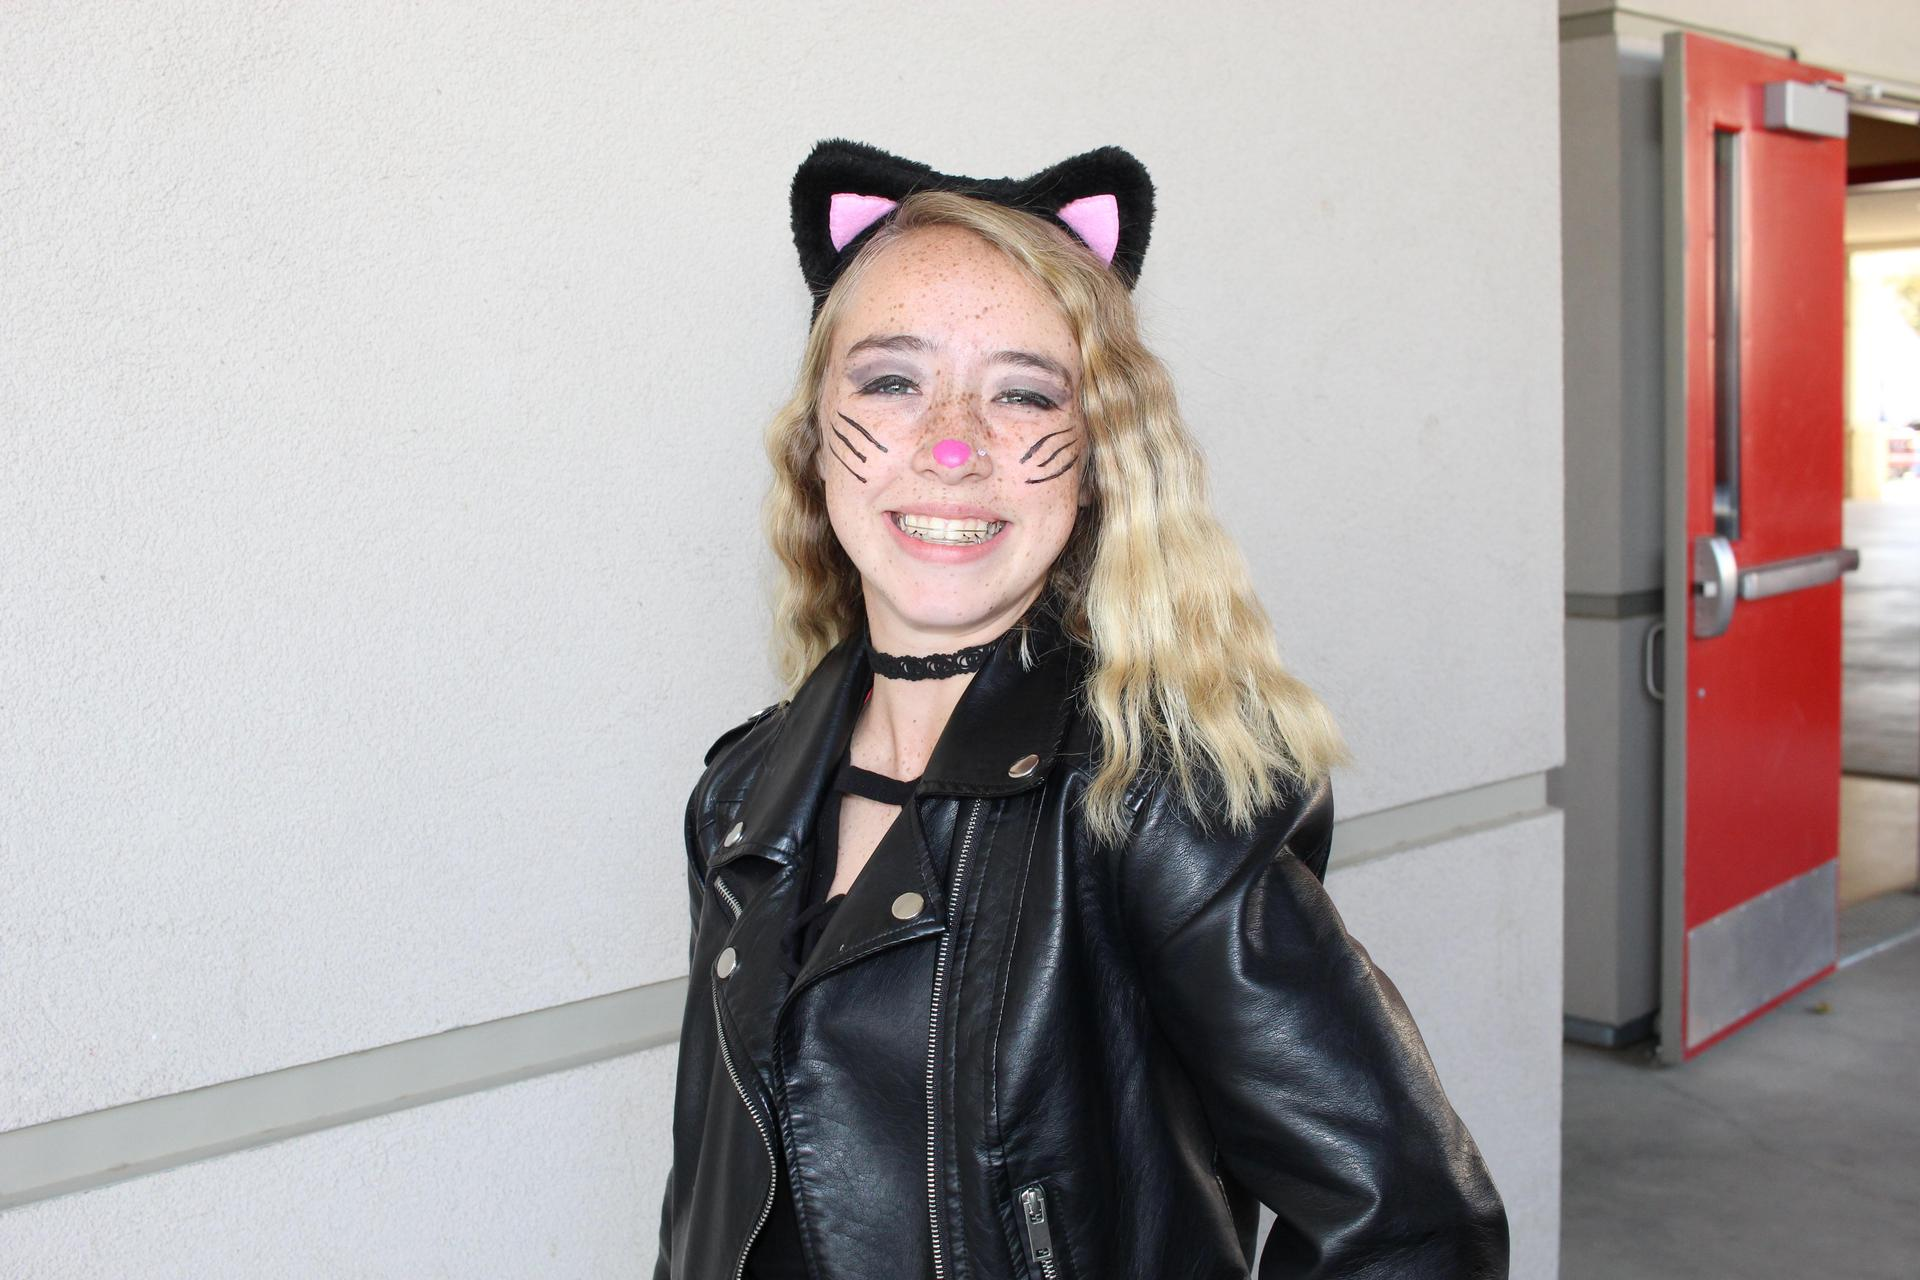 Abbigail Garner dressed as cat women